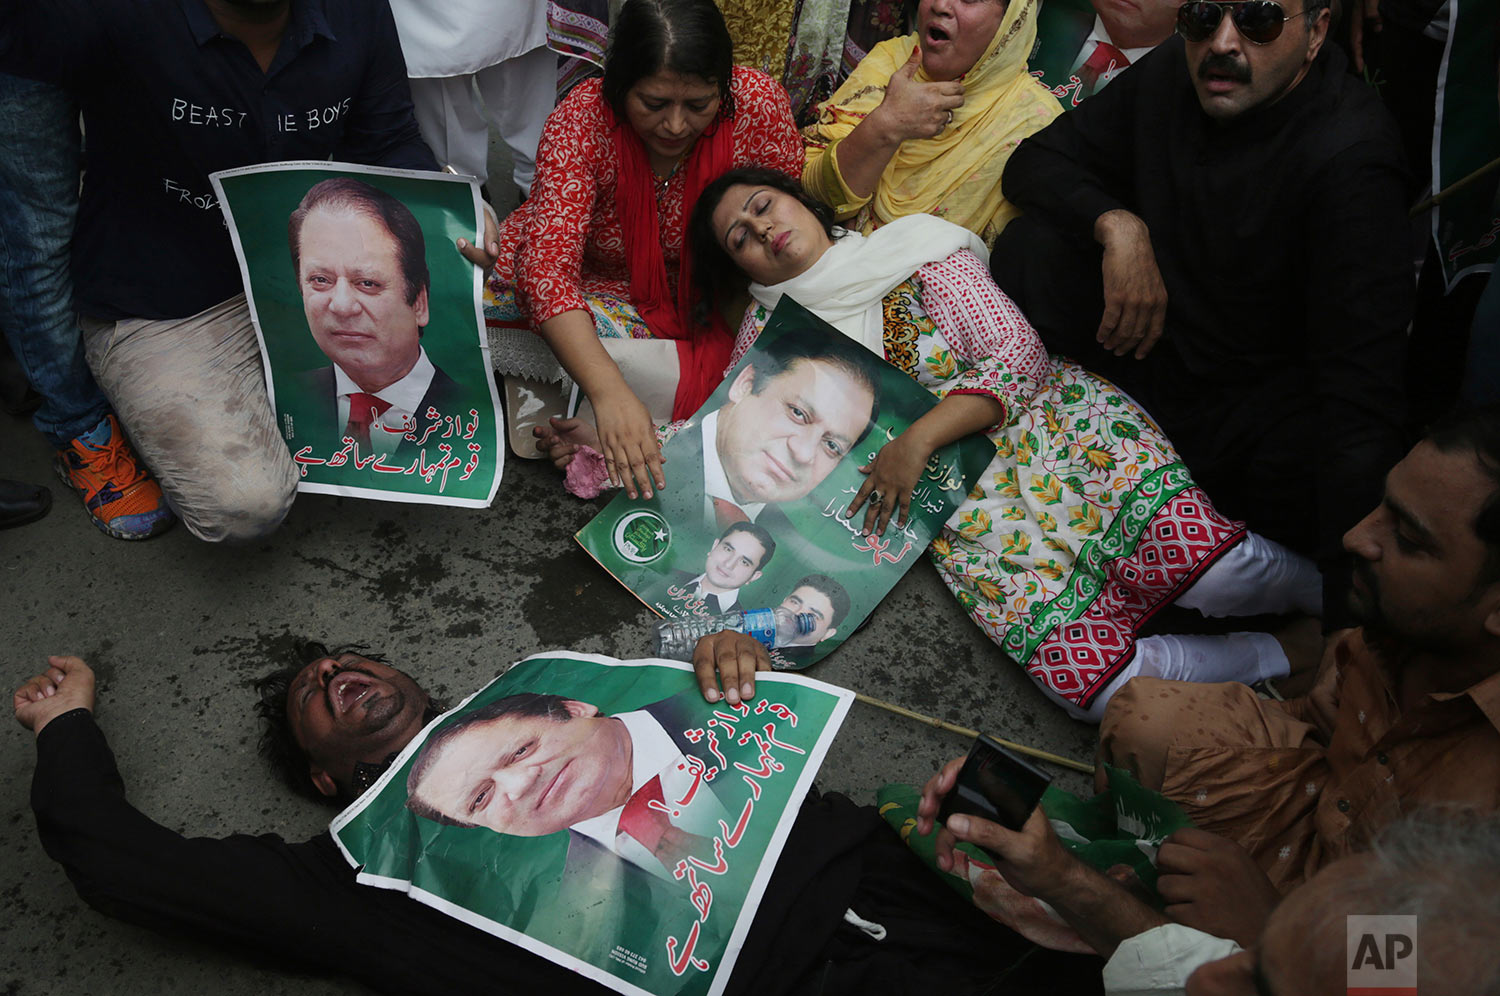 Supporters of the Pakistani ruling party Muslim League headed by Nawaz Sharif gesture during rally to condemn the dismissal of their leader in Lahore, Pakistan, Pakistan, Friday, July 28, 2017. Pakistan's Supreme Court in a unanimous decision has asked the country's anti-corruption body to file corruption charges against Sharif, his two sons and daughter for concealing their assets. (AP Photo/K.M. Chaudary)